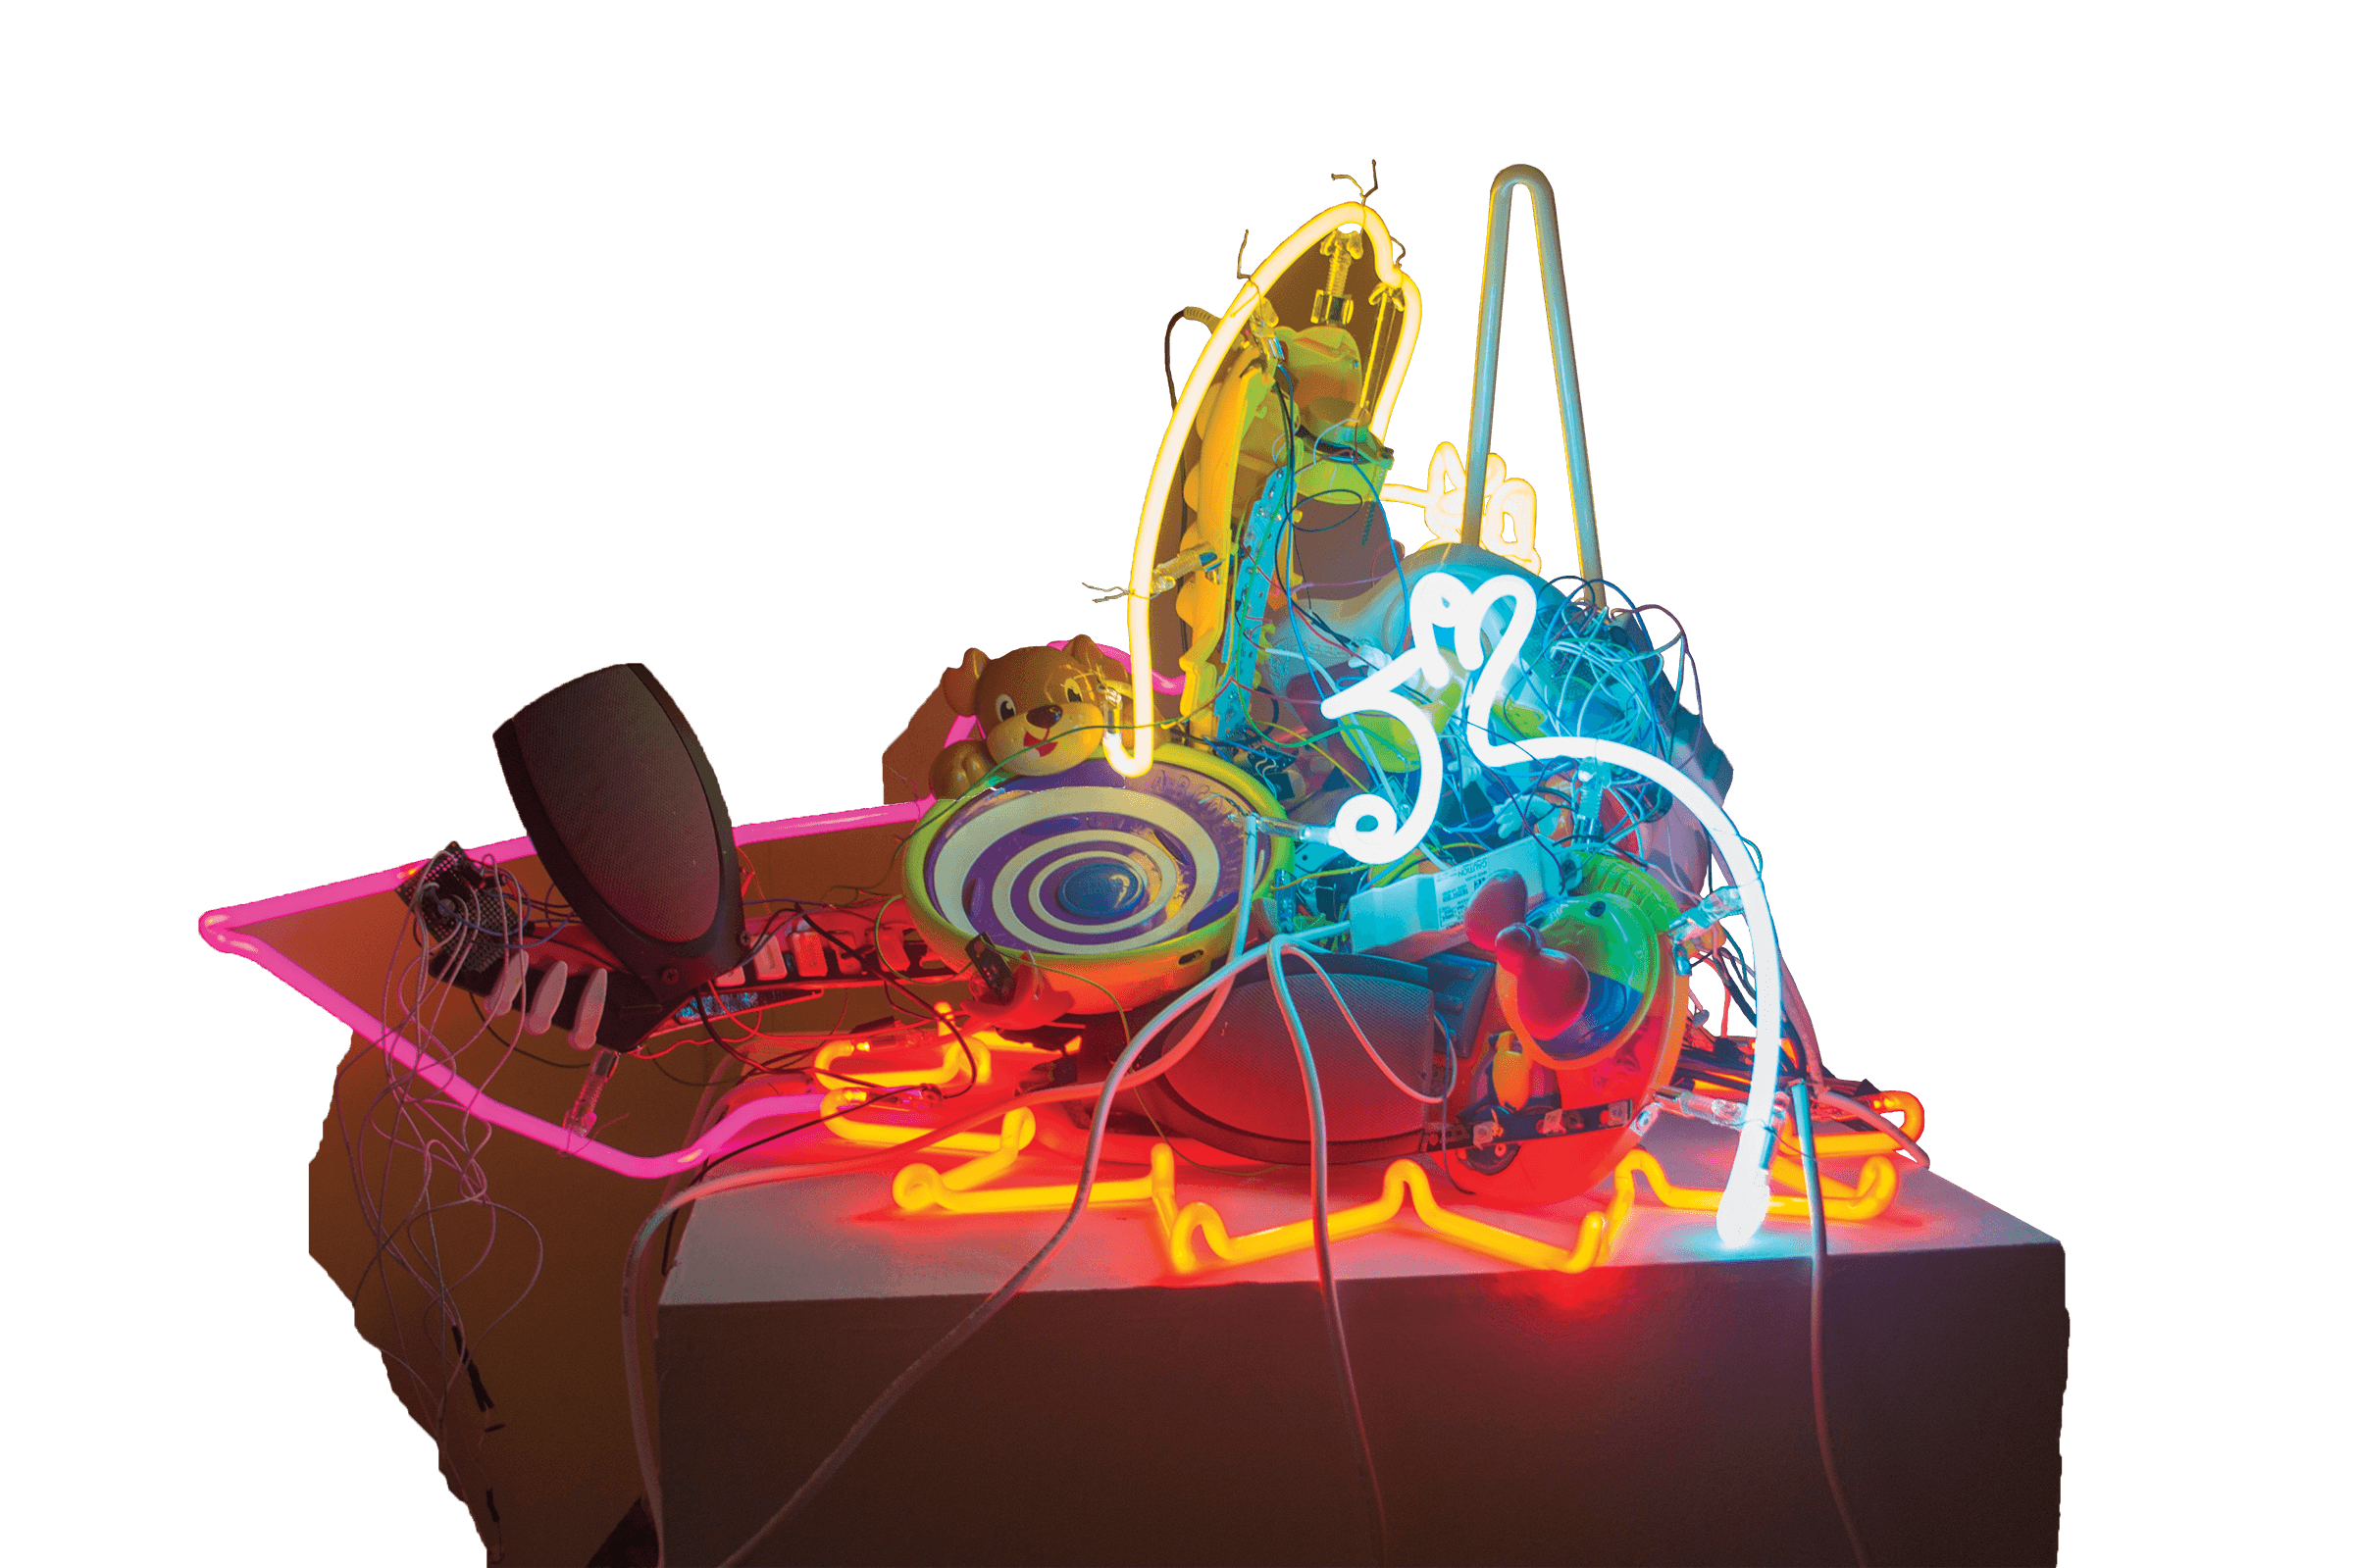 Photo of chaotic glass sculpture with neon, wires, and shapes